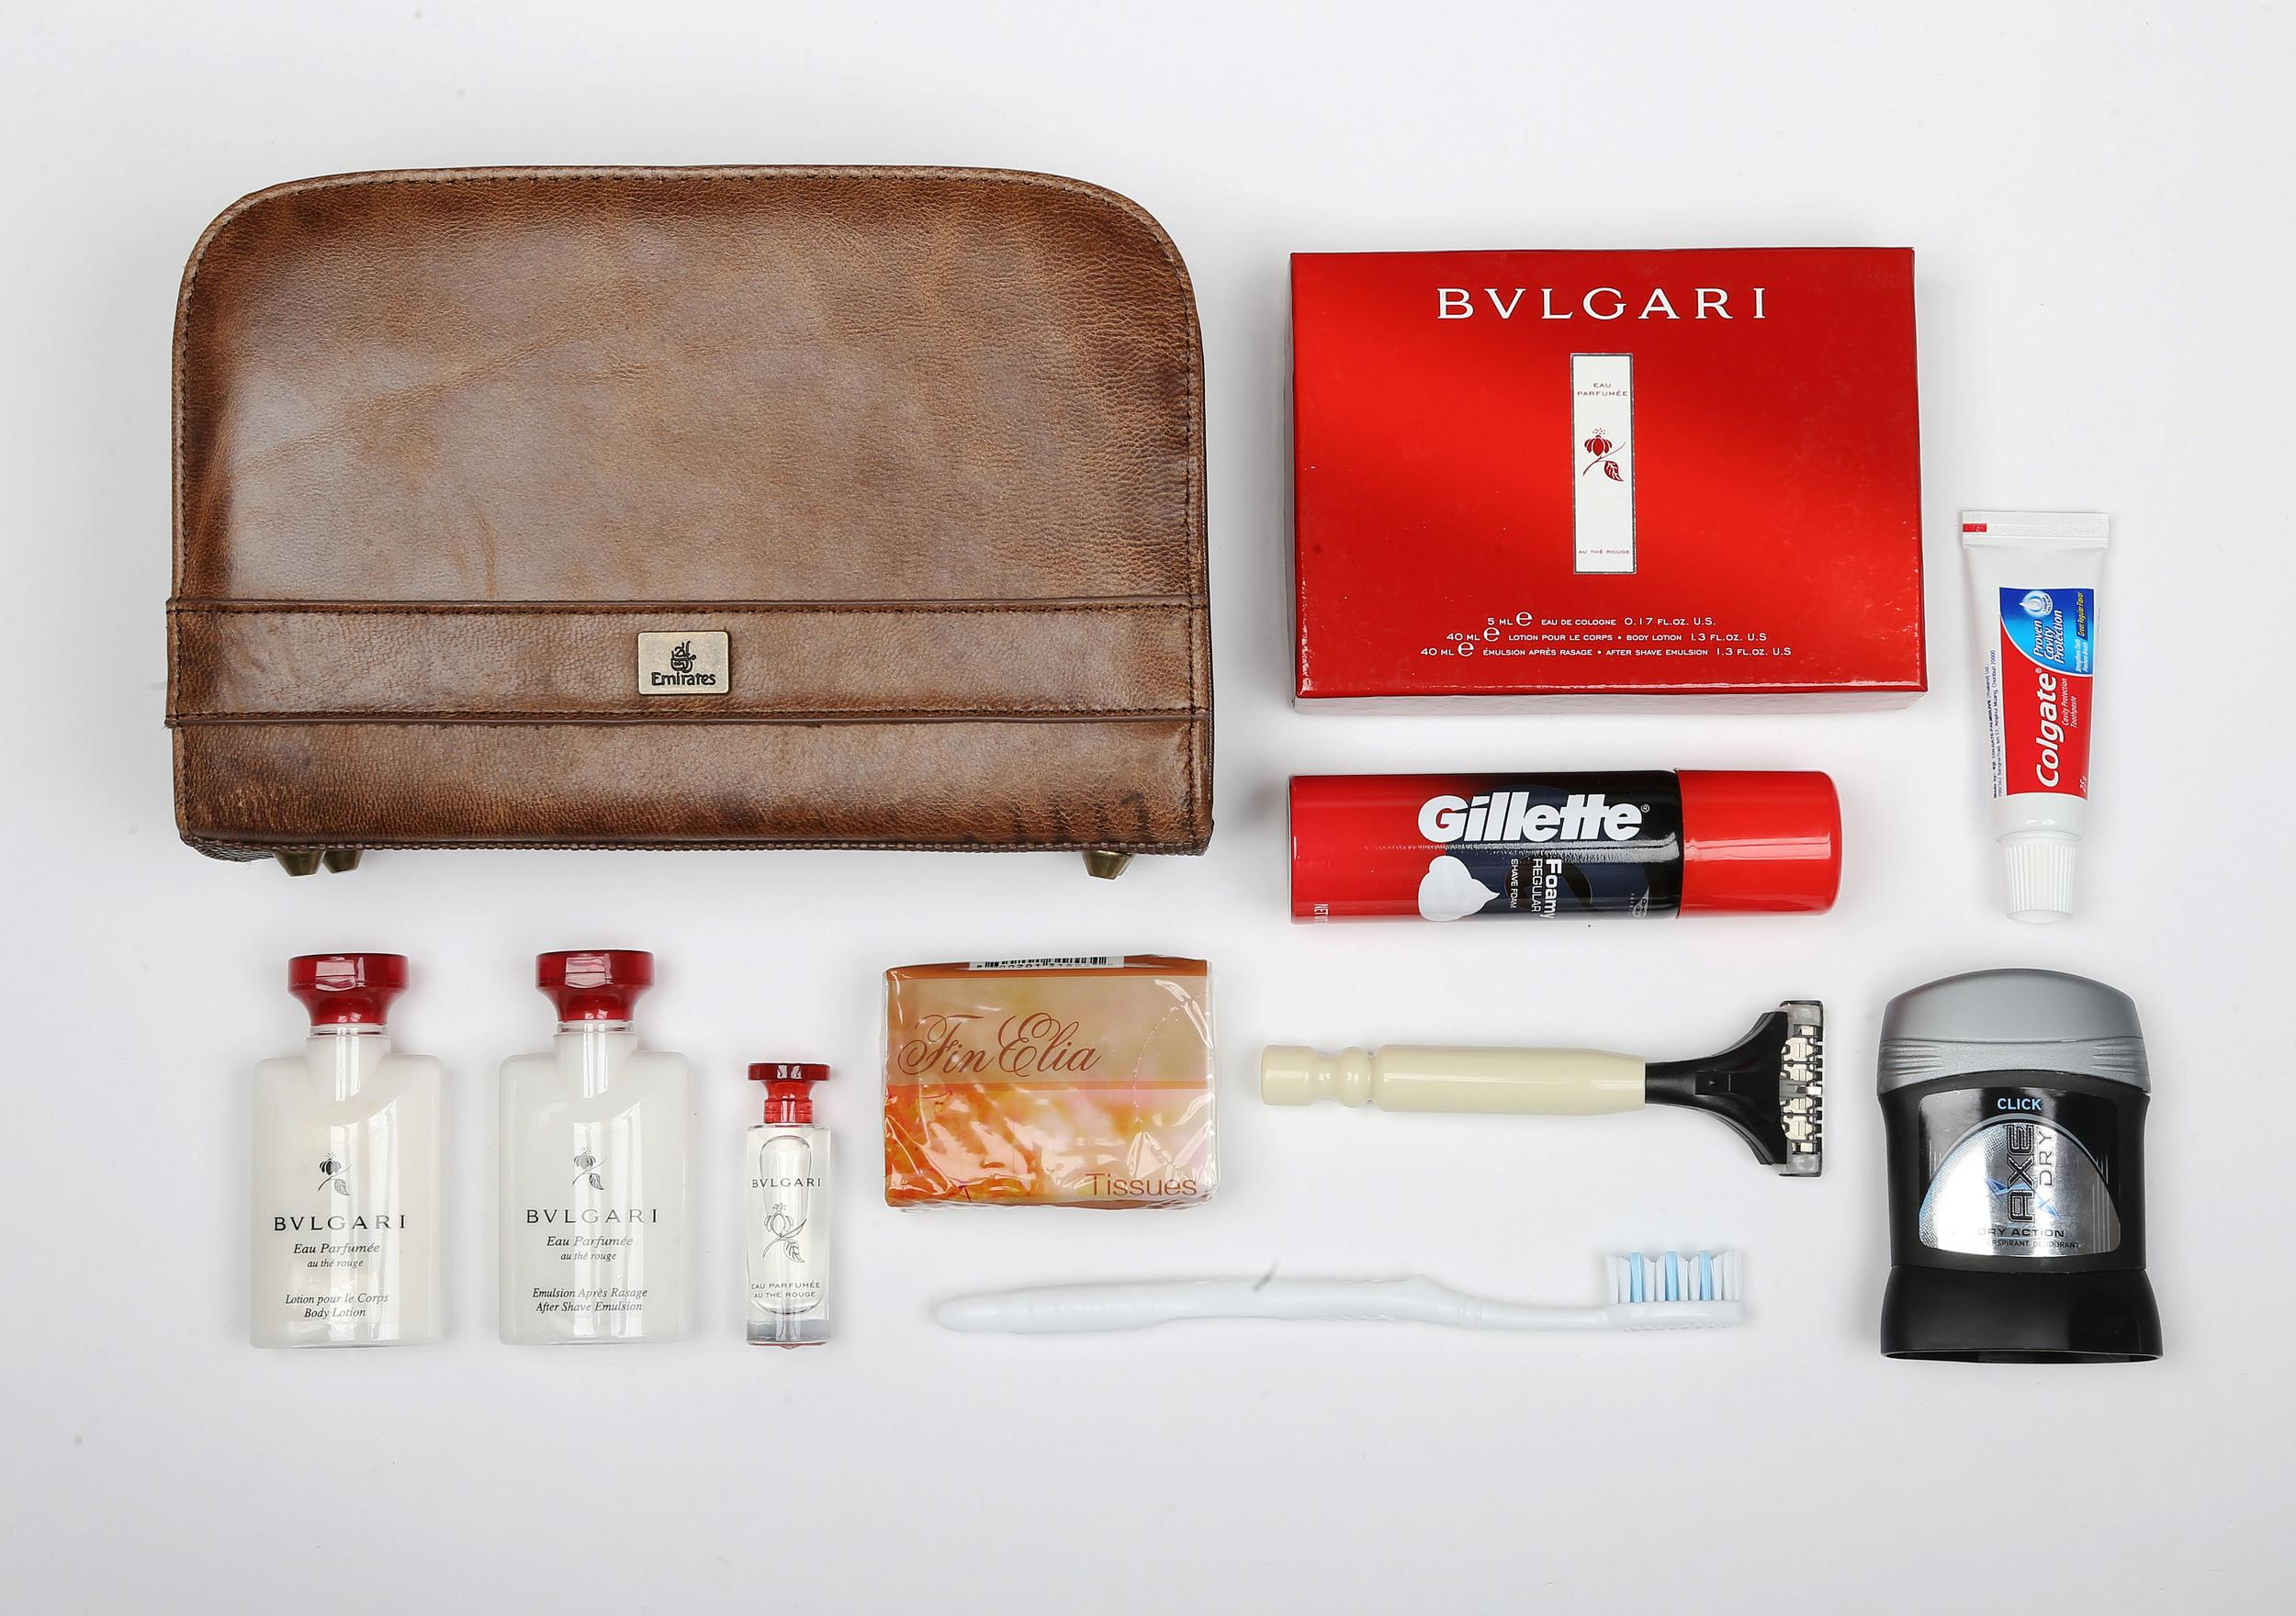 <p><strong>What do you get?</strong> Bulgari au Thé Rouge body lotion, after-shave cream and perfume, Gillette shaving foam, razor, toothbrush, toothpaste, Axe deodorant, tissues<br /> <strong>Best bit of the kit?</strong> It's got to be the leather bag. Soft, every so slightly distressed, like the wash bag your grandfather used at Eton.</p>